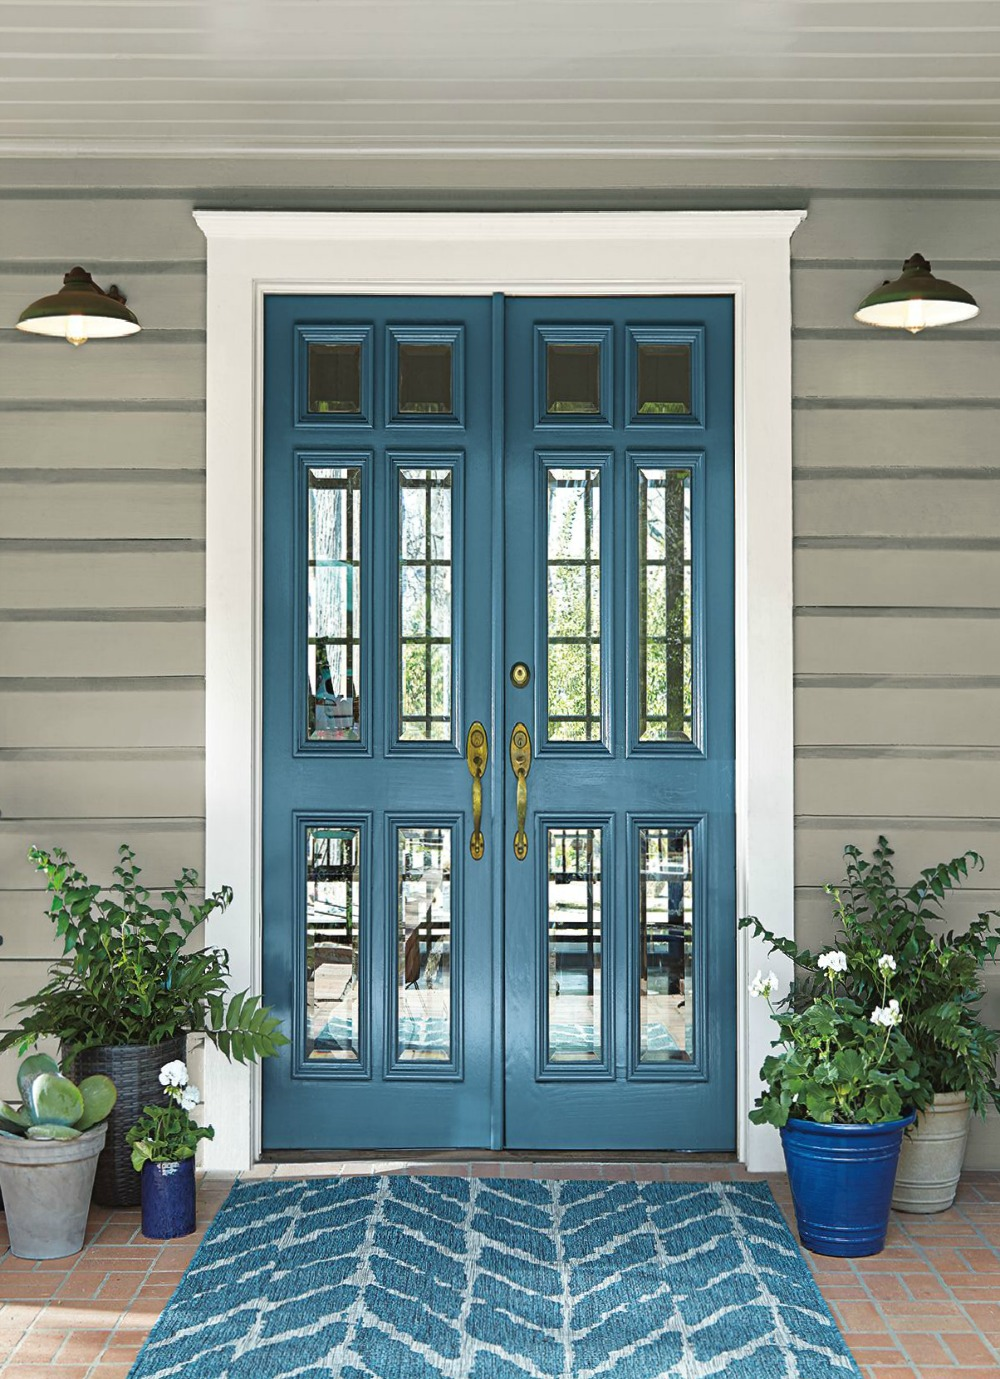 Door-paint-color-is-BEHR-Blueprint.-BEHR-2019-Color-of-the-Year.jpg